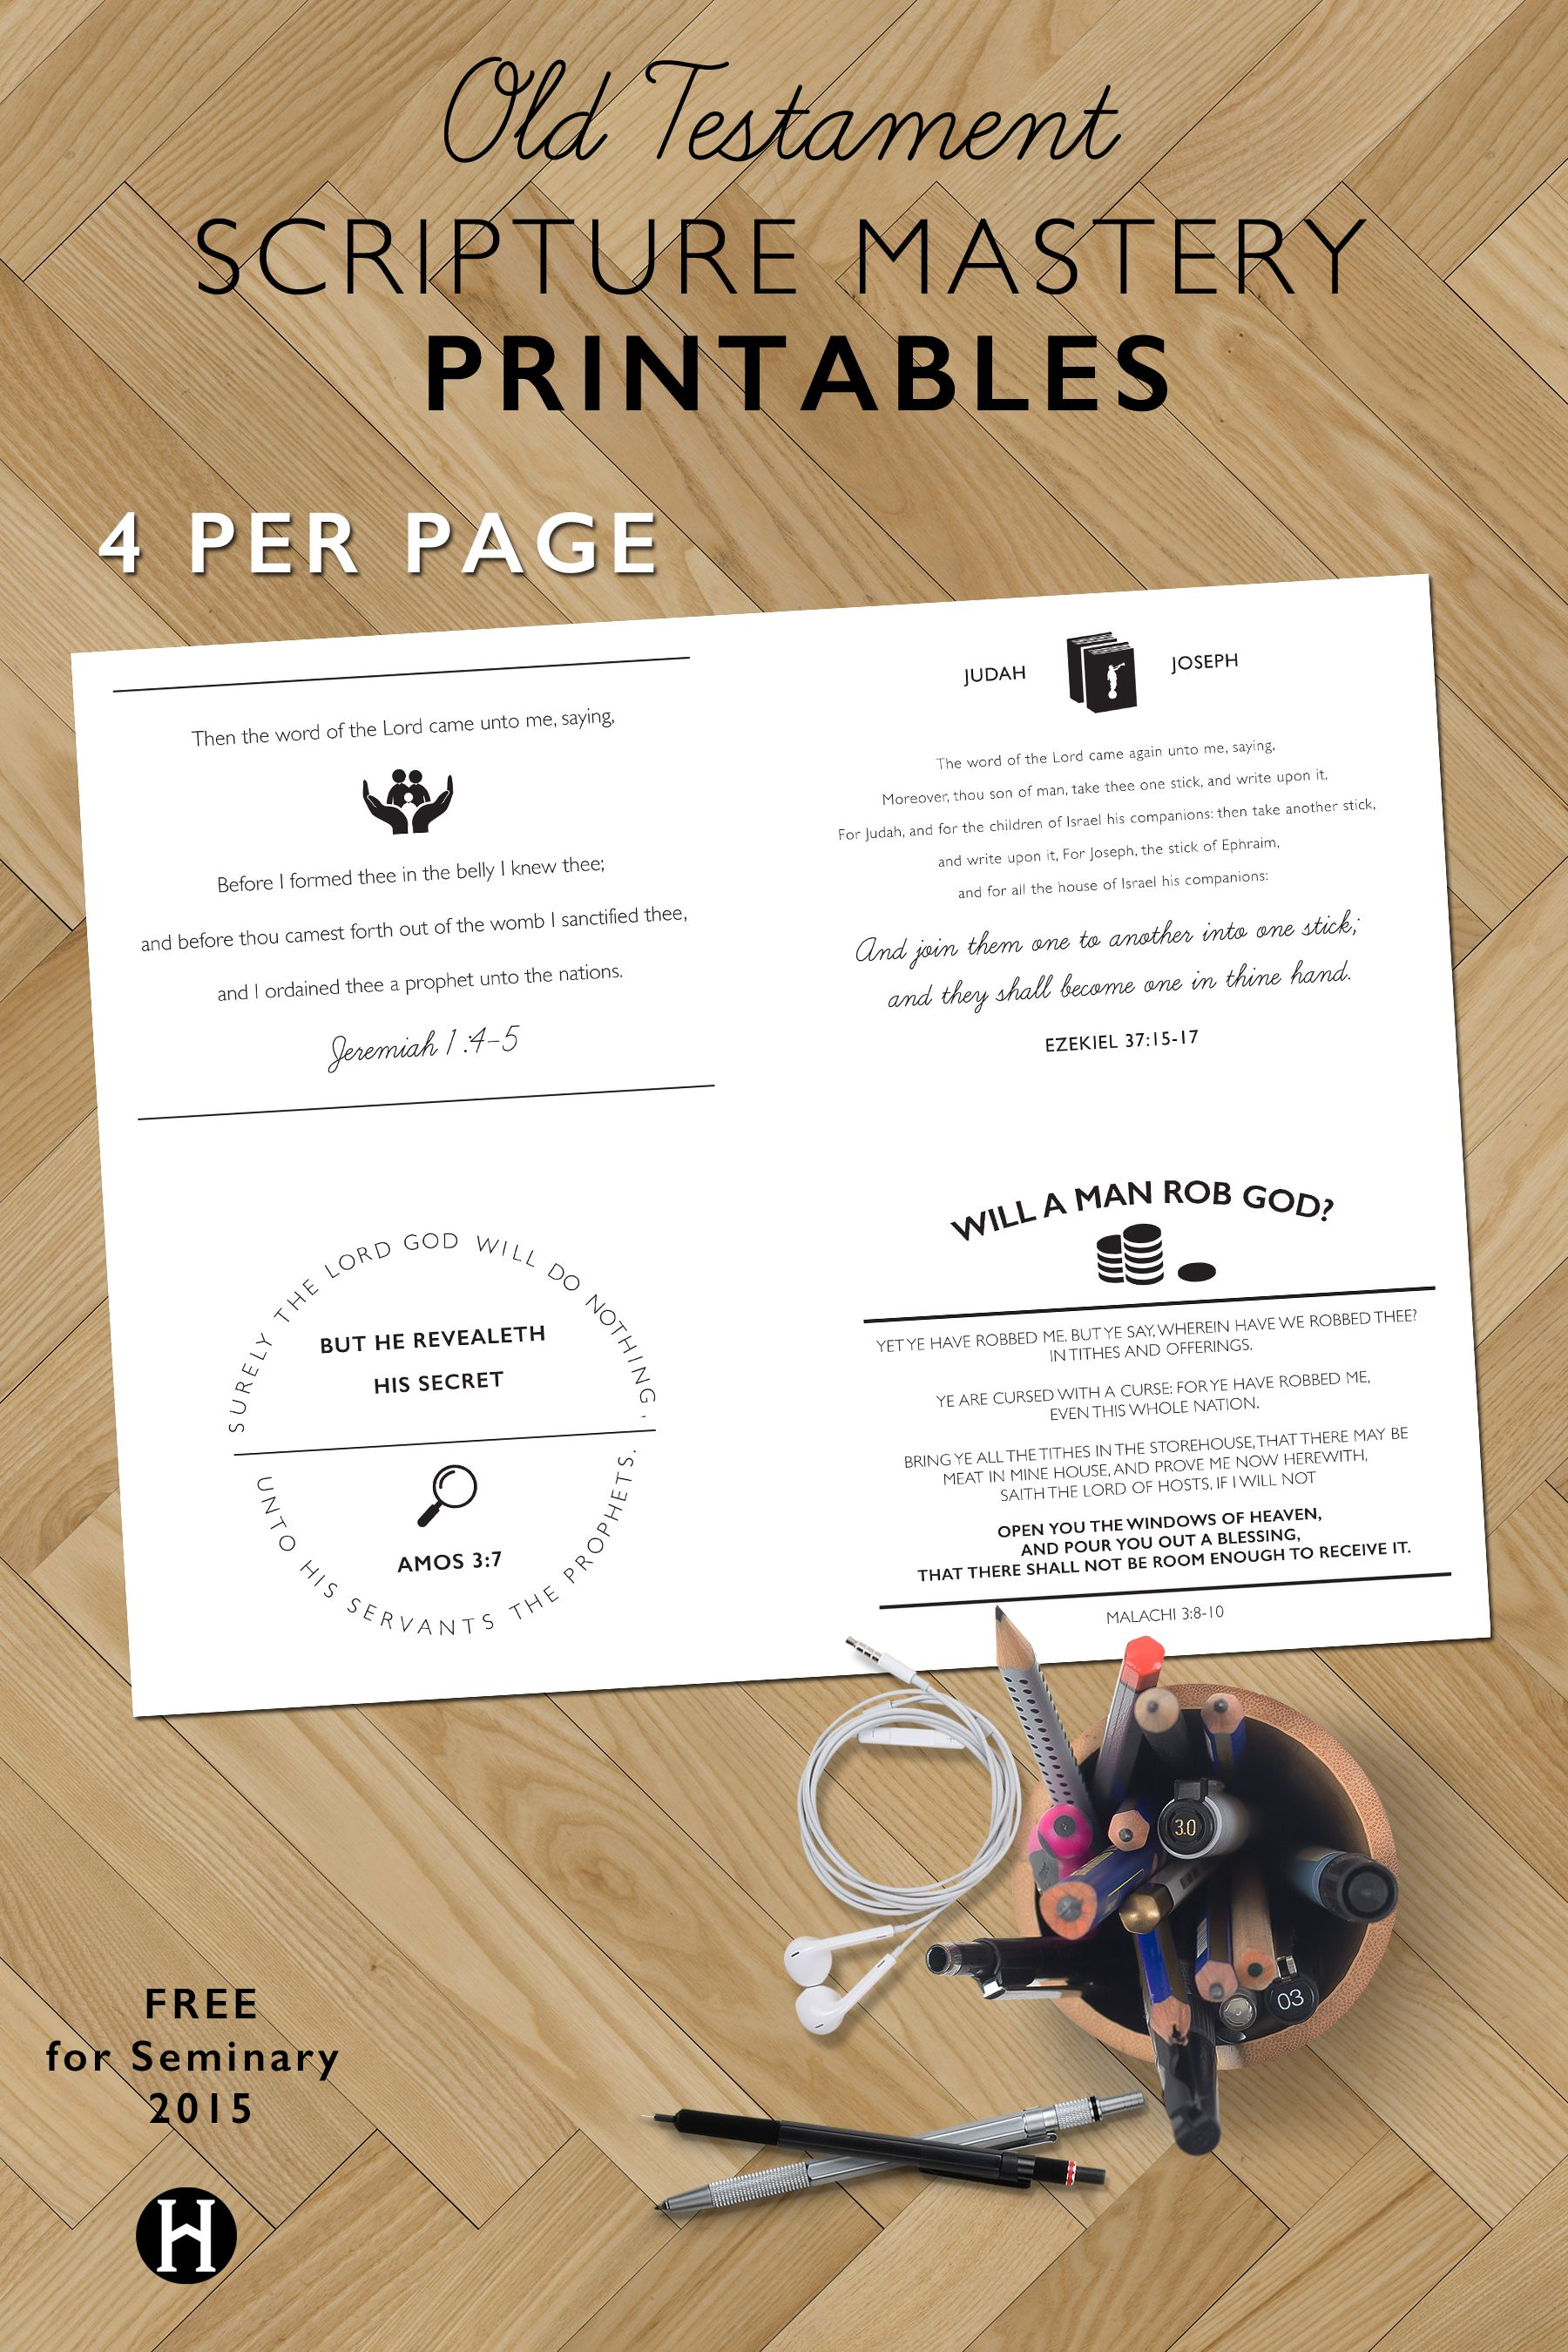 Old Testament Scripture Mastery Printables 4 Per Page